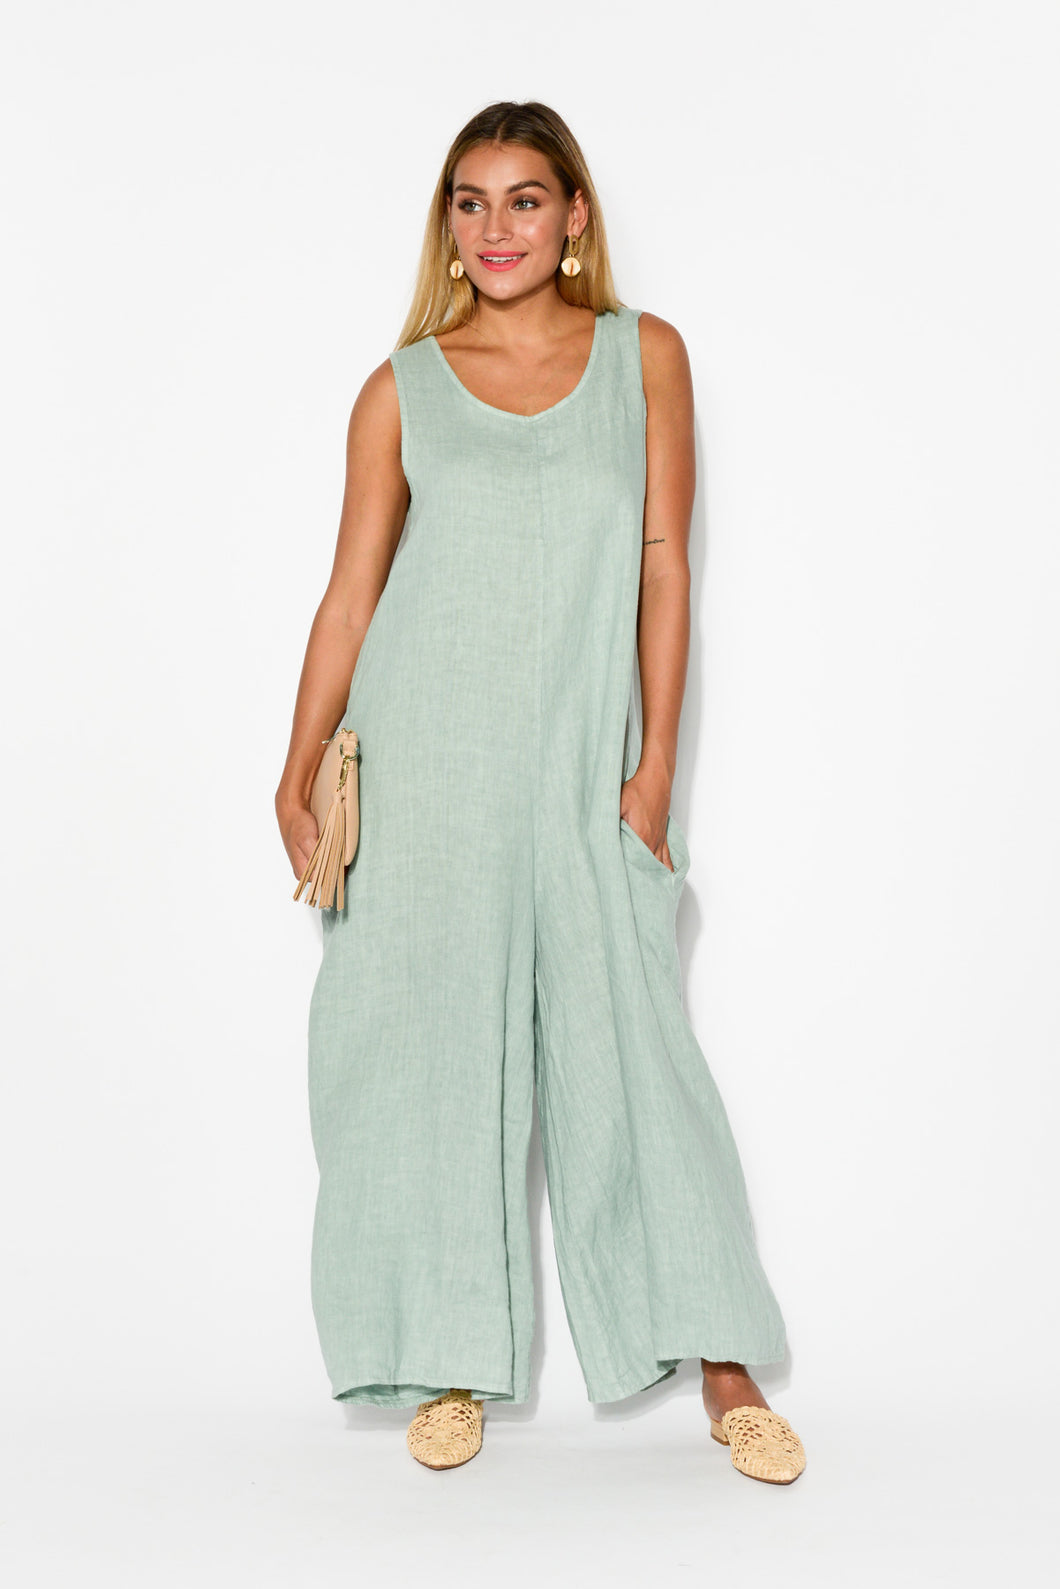 Fay Sea Green Linen Jumpsuit - Blue Bungalow